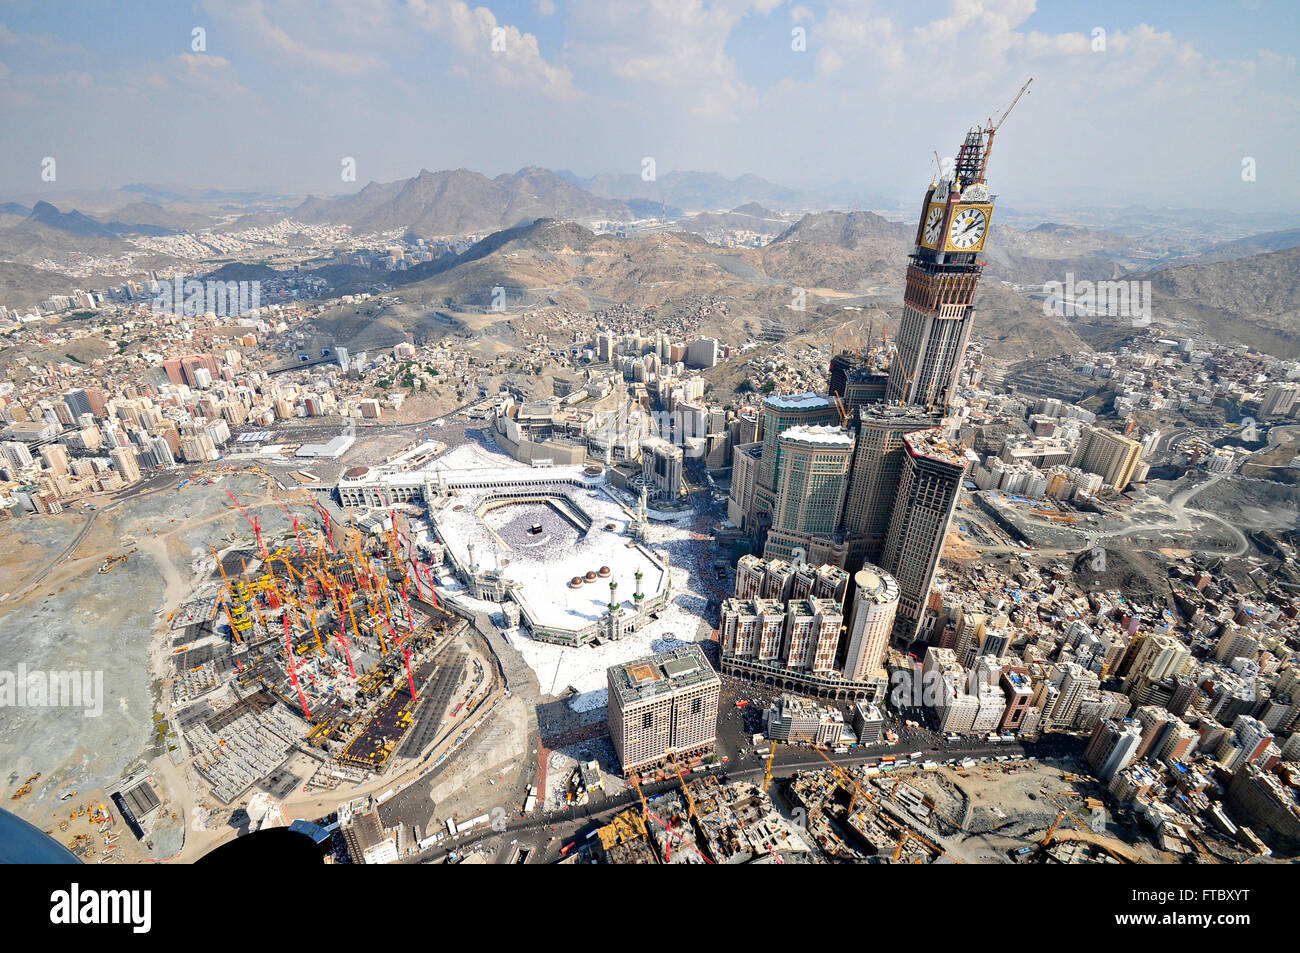 Aerial view of the Holy Kaaba in the Al-Masjid al Haram ...